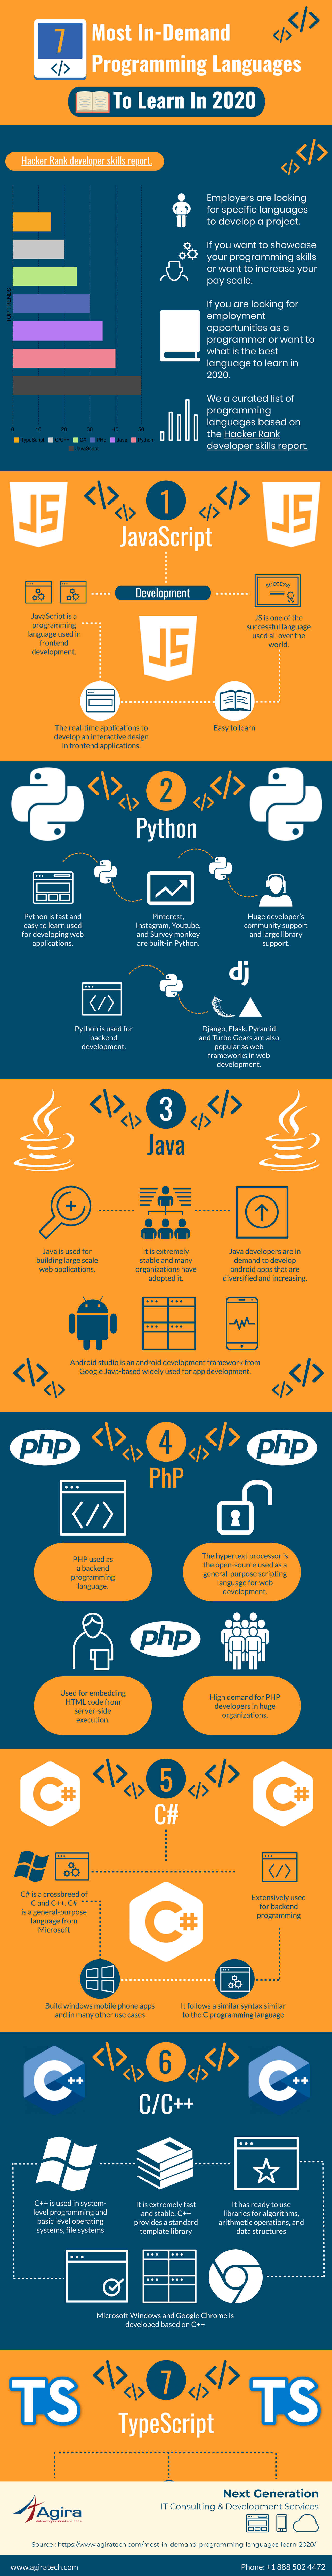 7 Most In Demand Programming Languages To Learn In 2020 Software Developer Skills Learning Languages Programming Languages List Of Programming Languages